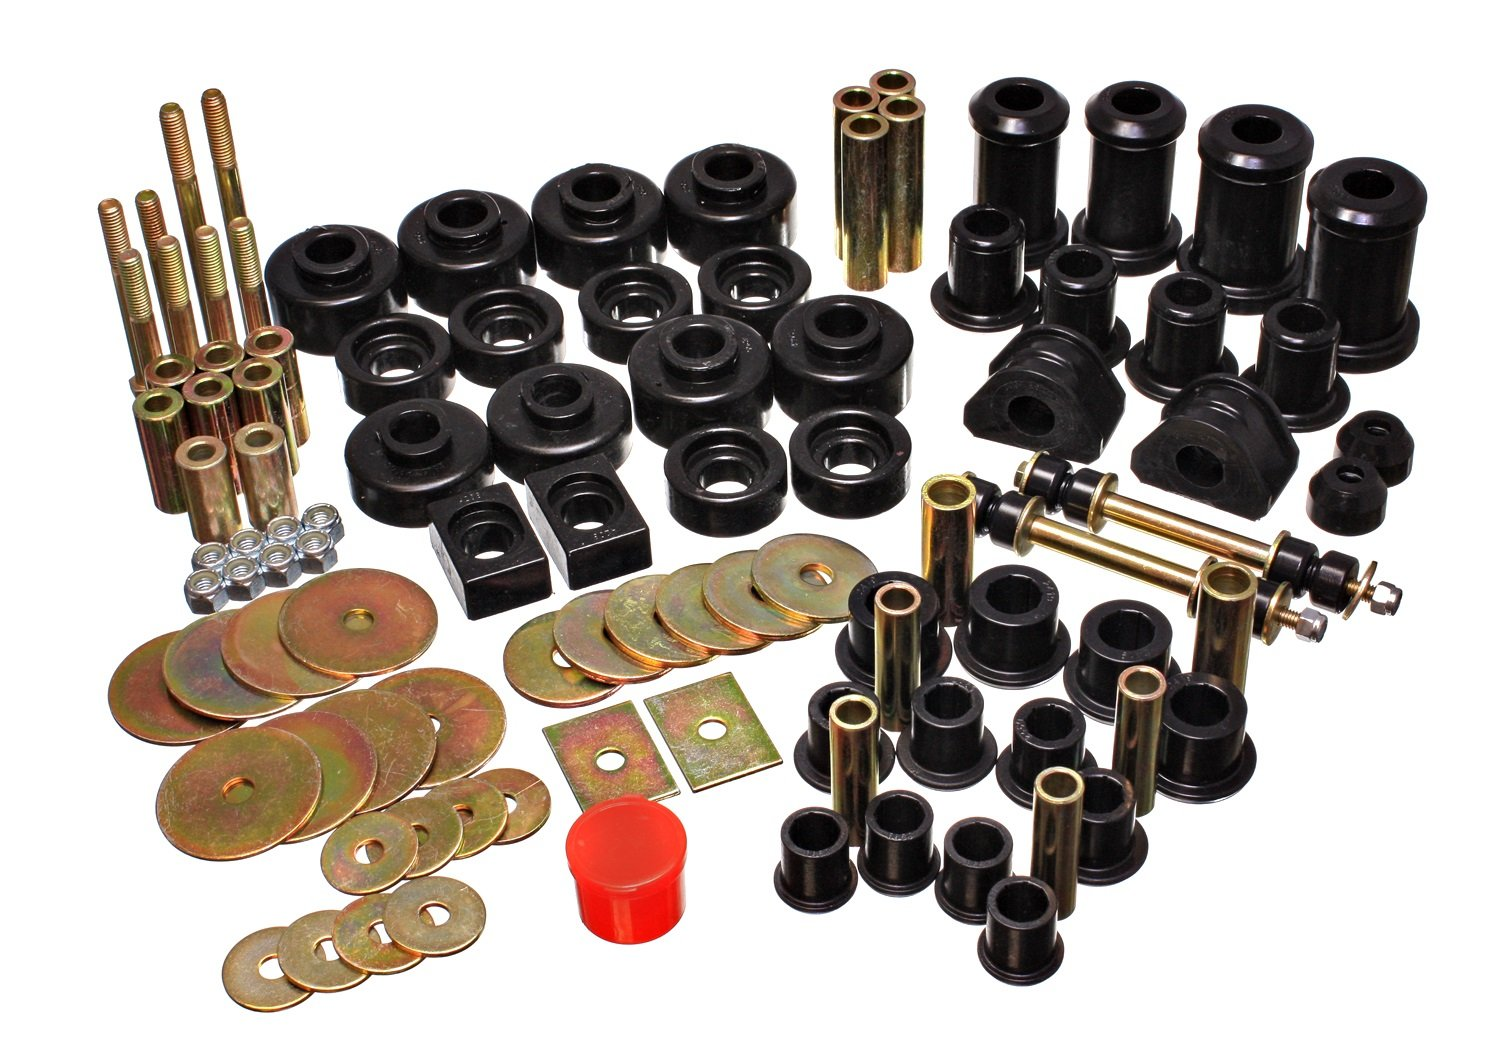 Energy Suspension 15.2109G Rear Spring Plate Bushings Services Stock Suspension - 4 Bushings Per Set